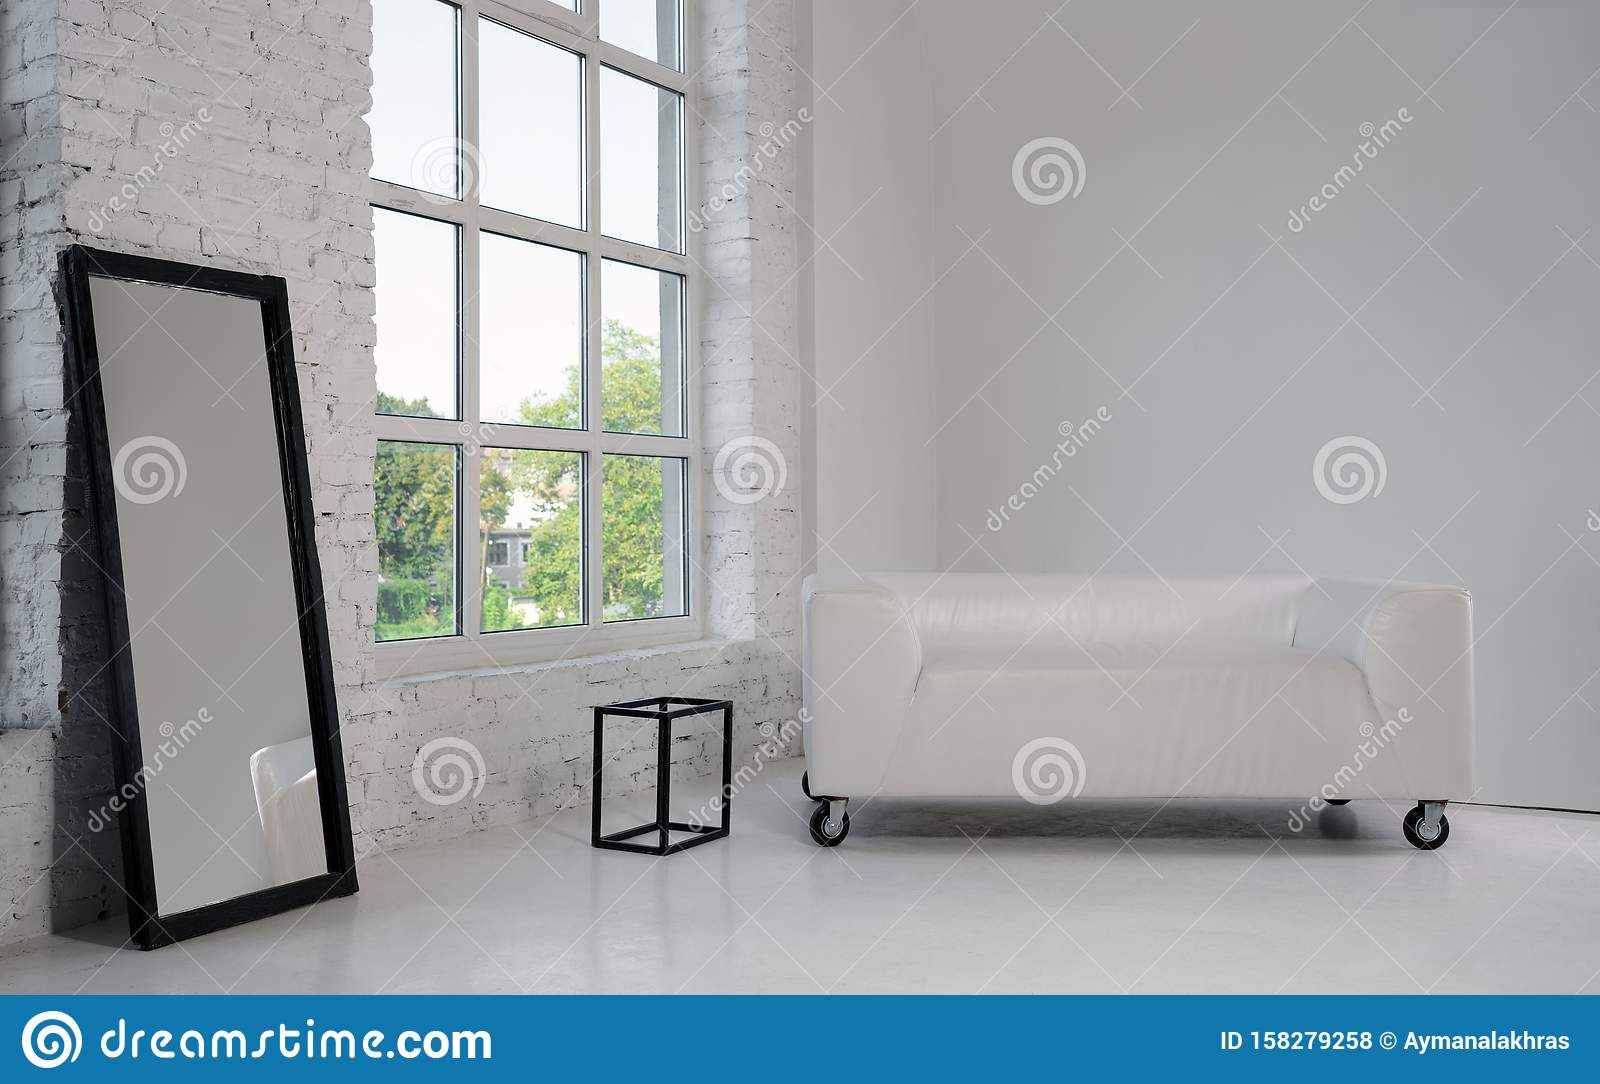 Modern White Sofa And Large Black Framed Mirror In White Minimalistic Room With Big Window Stock Photo Image Of Floor Brick 158279258